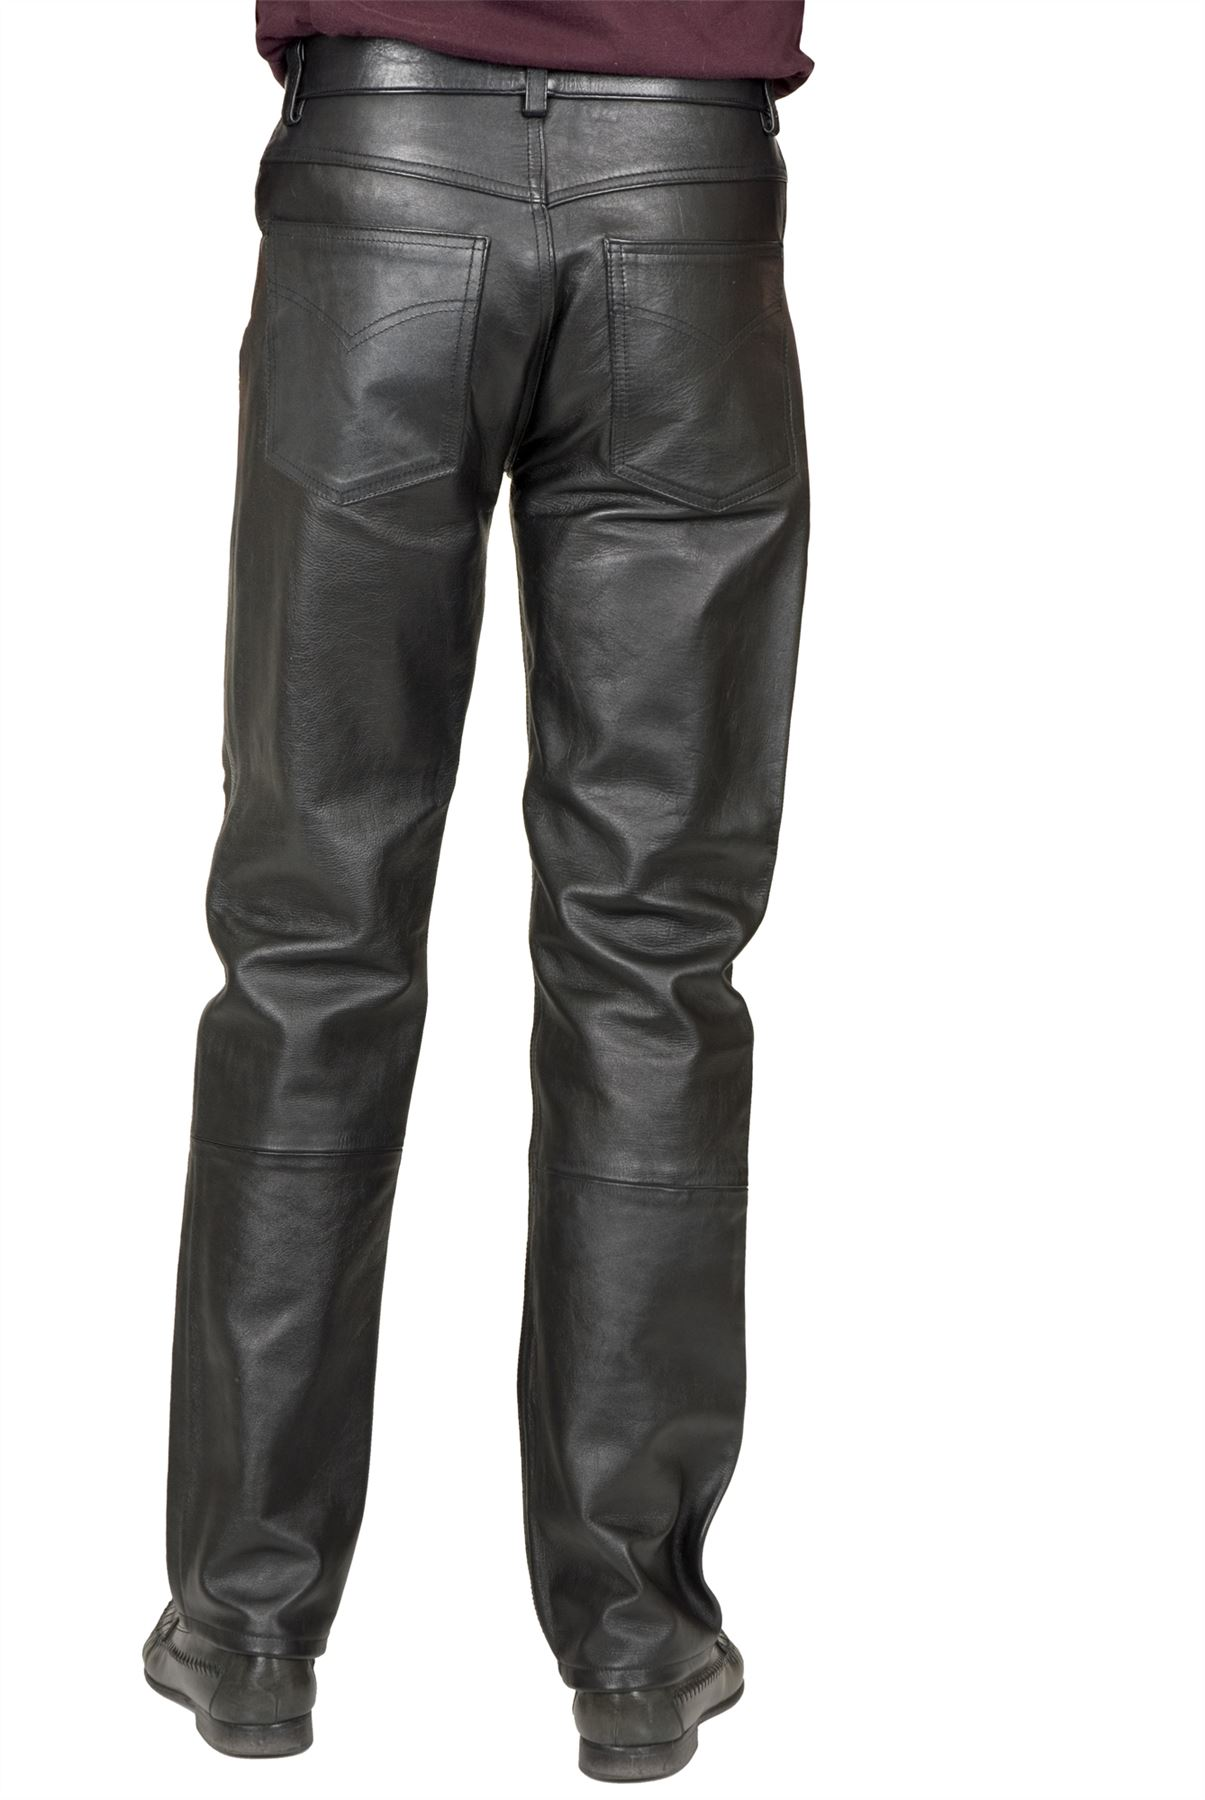 6045bfe21e Pants Faux Leather Jeans Pleather Disco Mens Halloween Costume